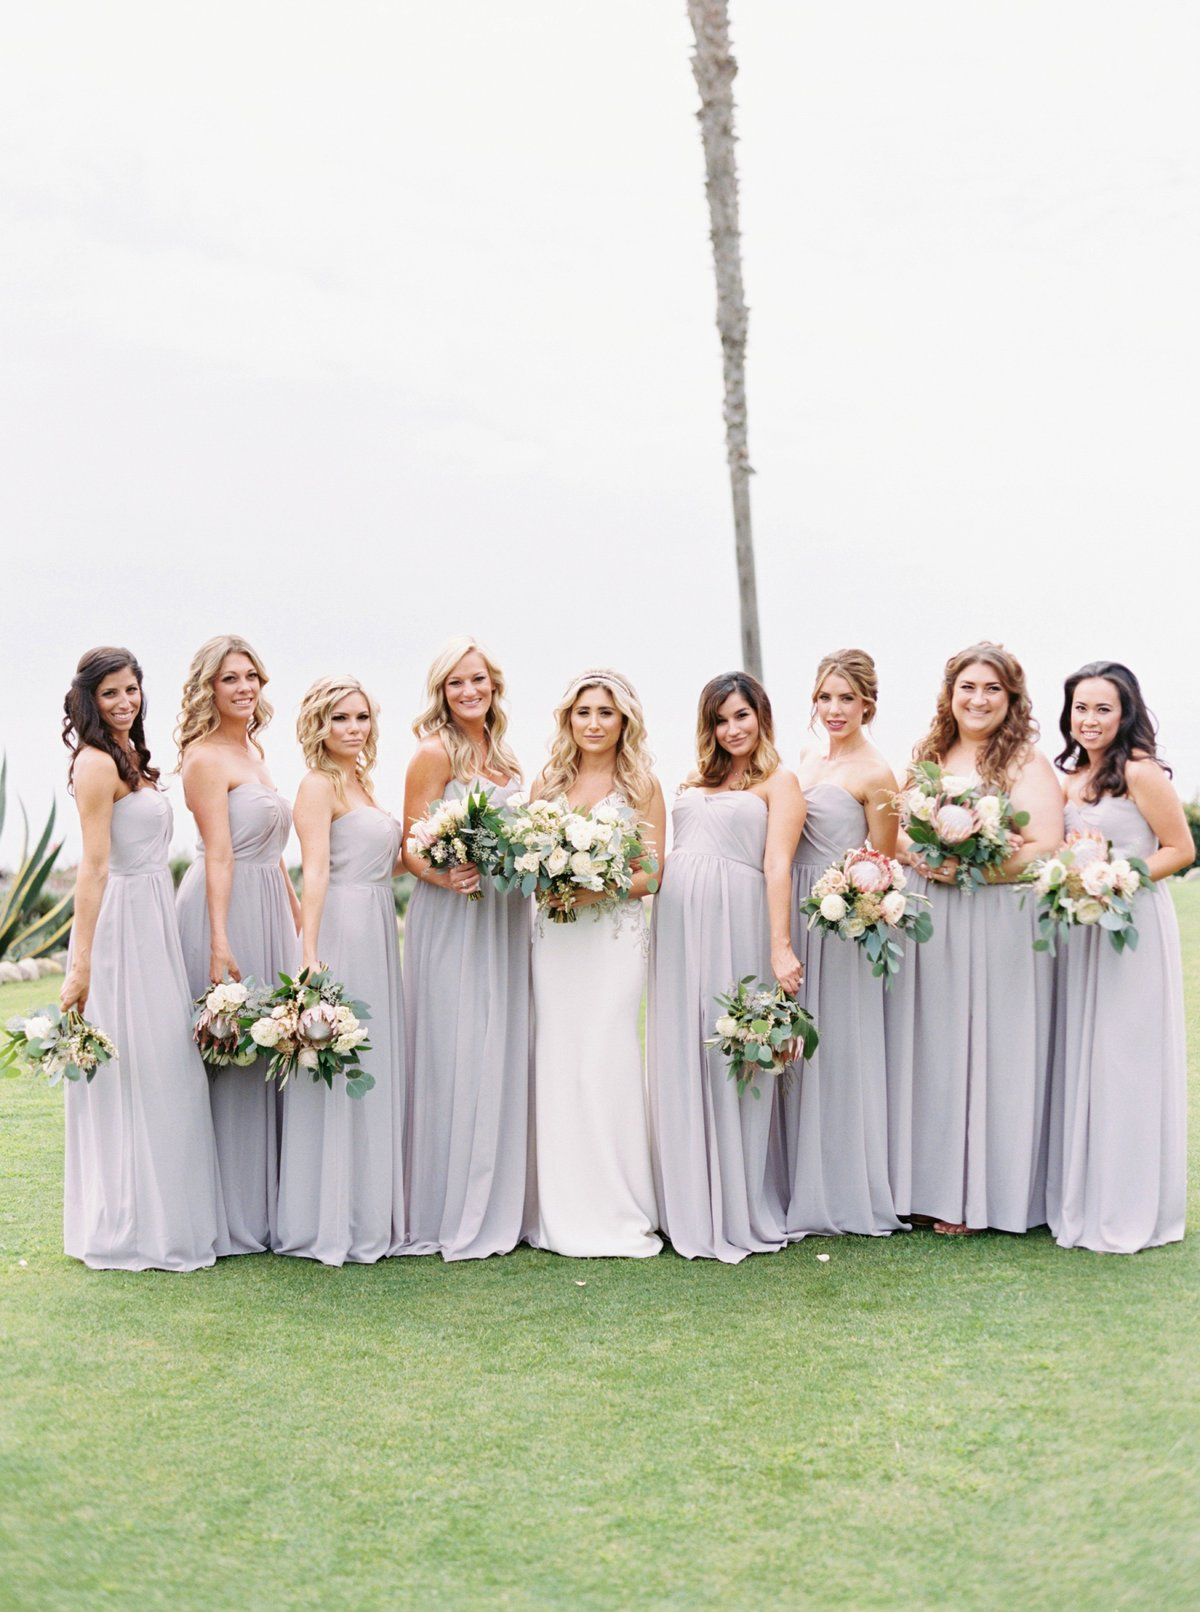 nicoleclareyphotography_evan+jeff_laguna beach_wedding_0001